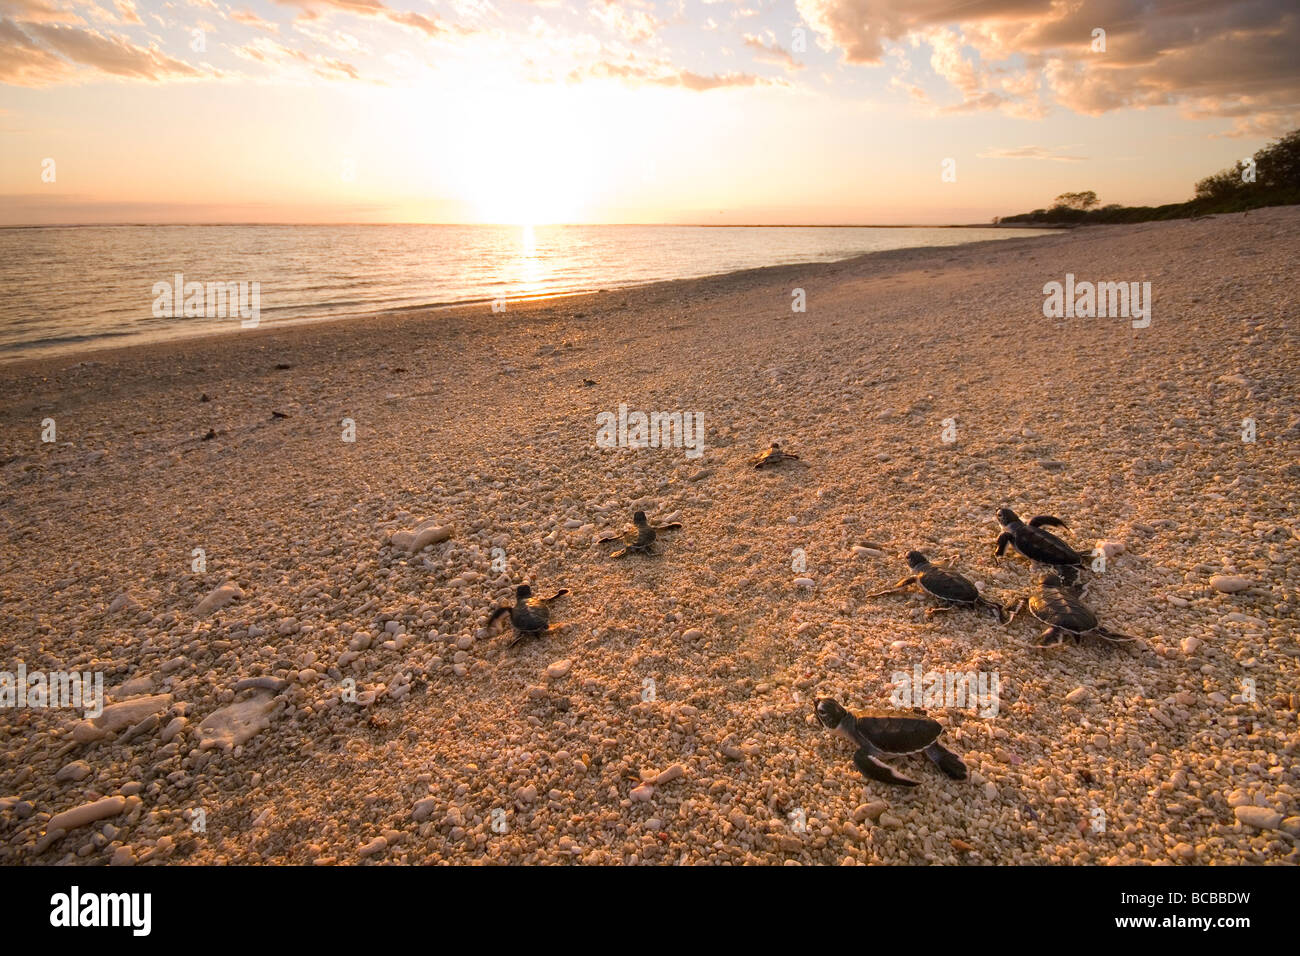 Young Green Turtles making the journey to the water - Stock Image